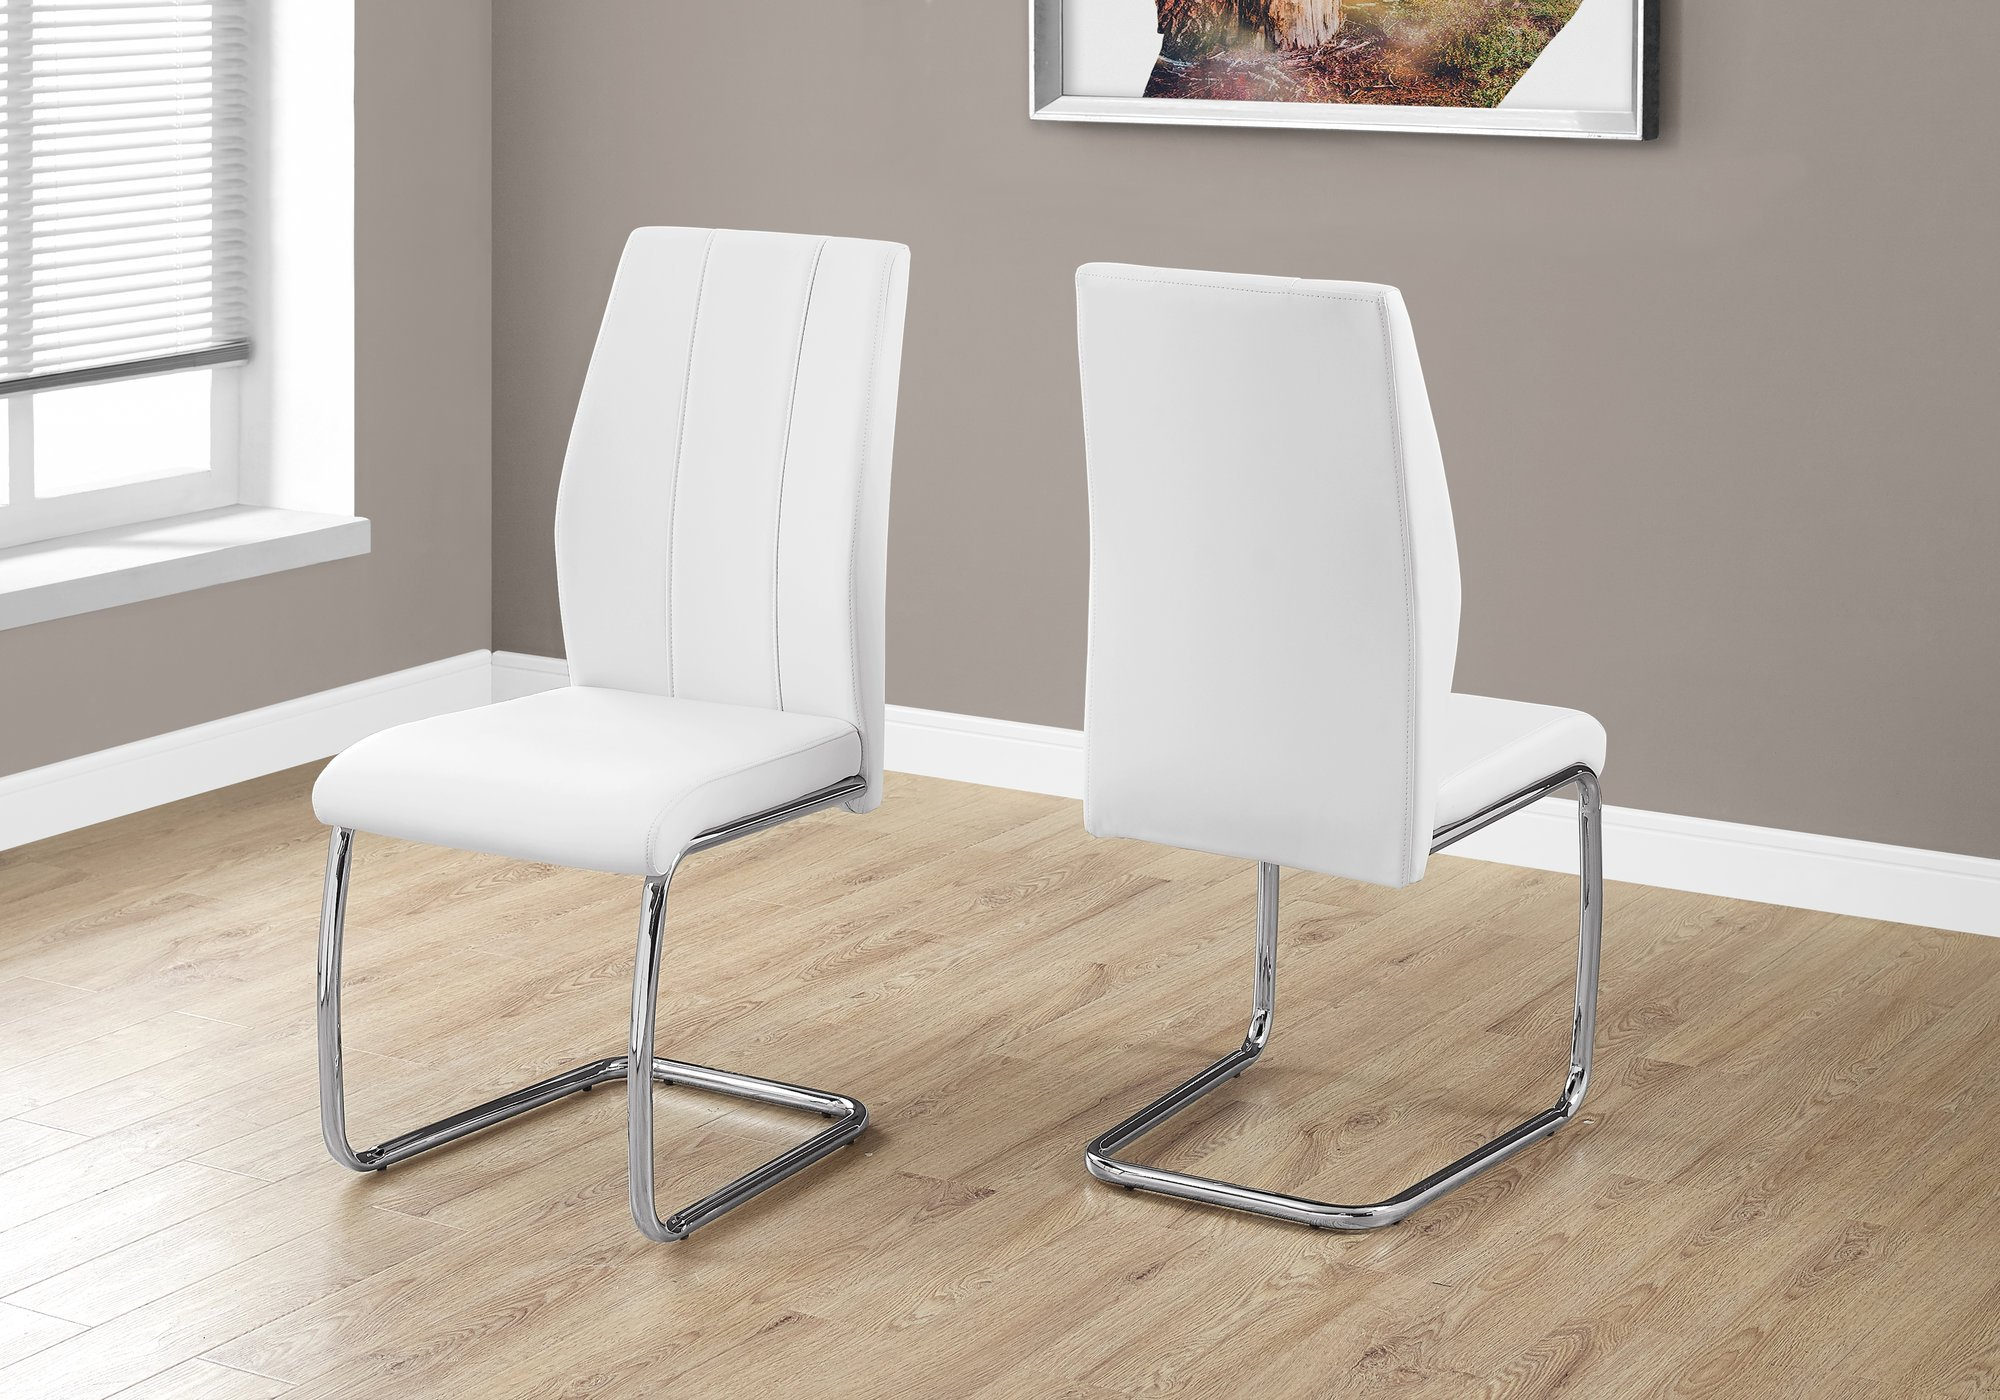 Monarch Specialties I I 1075 2 Piece Dining CHAIR-2PCS/ 39'' Leather-Look/Chrome, 17.25'' L x 20.25'' D x 38.75'' H, White by Monarch Specialties